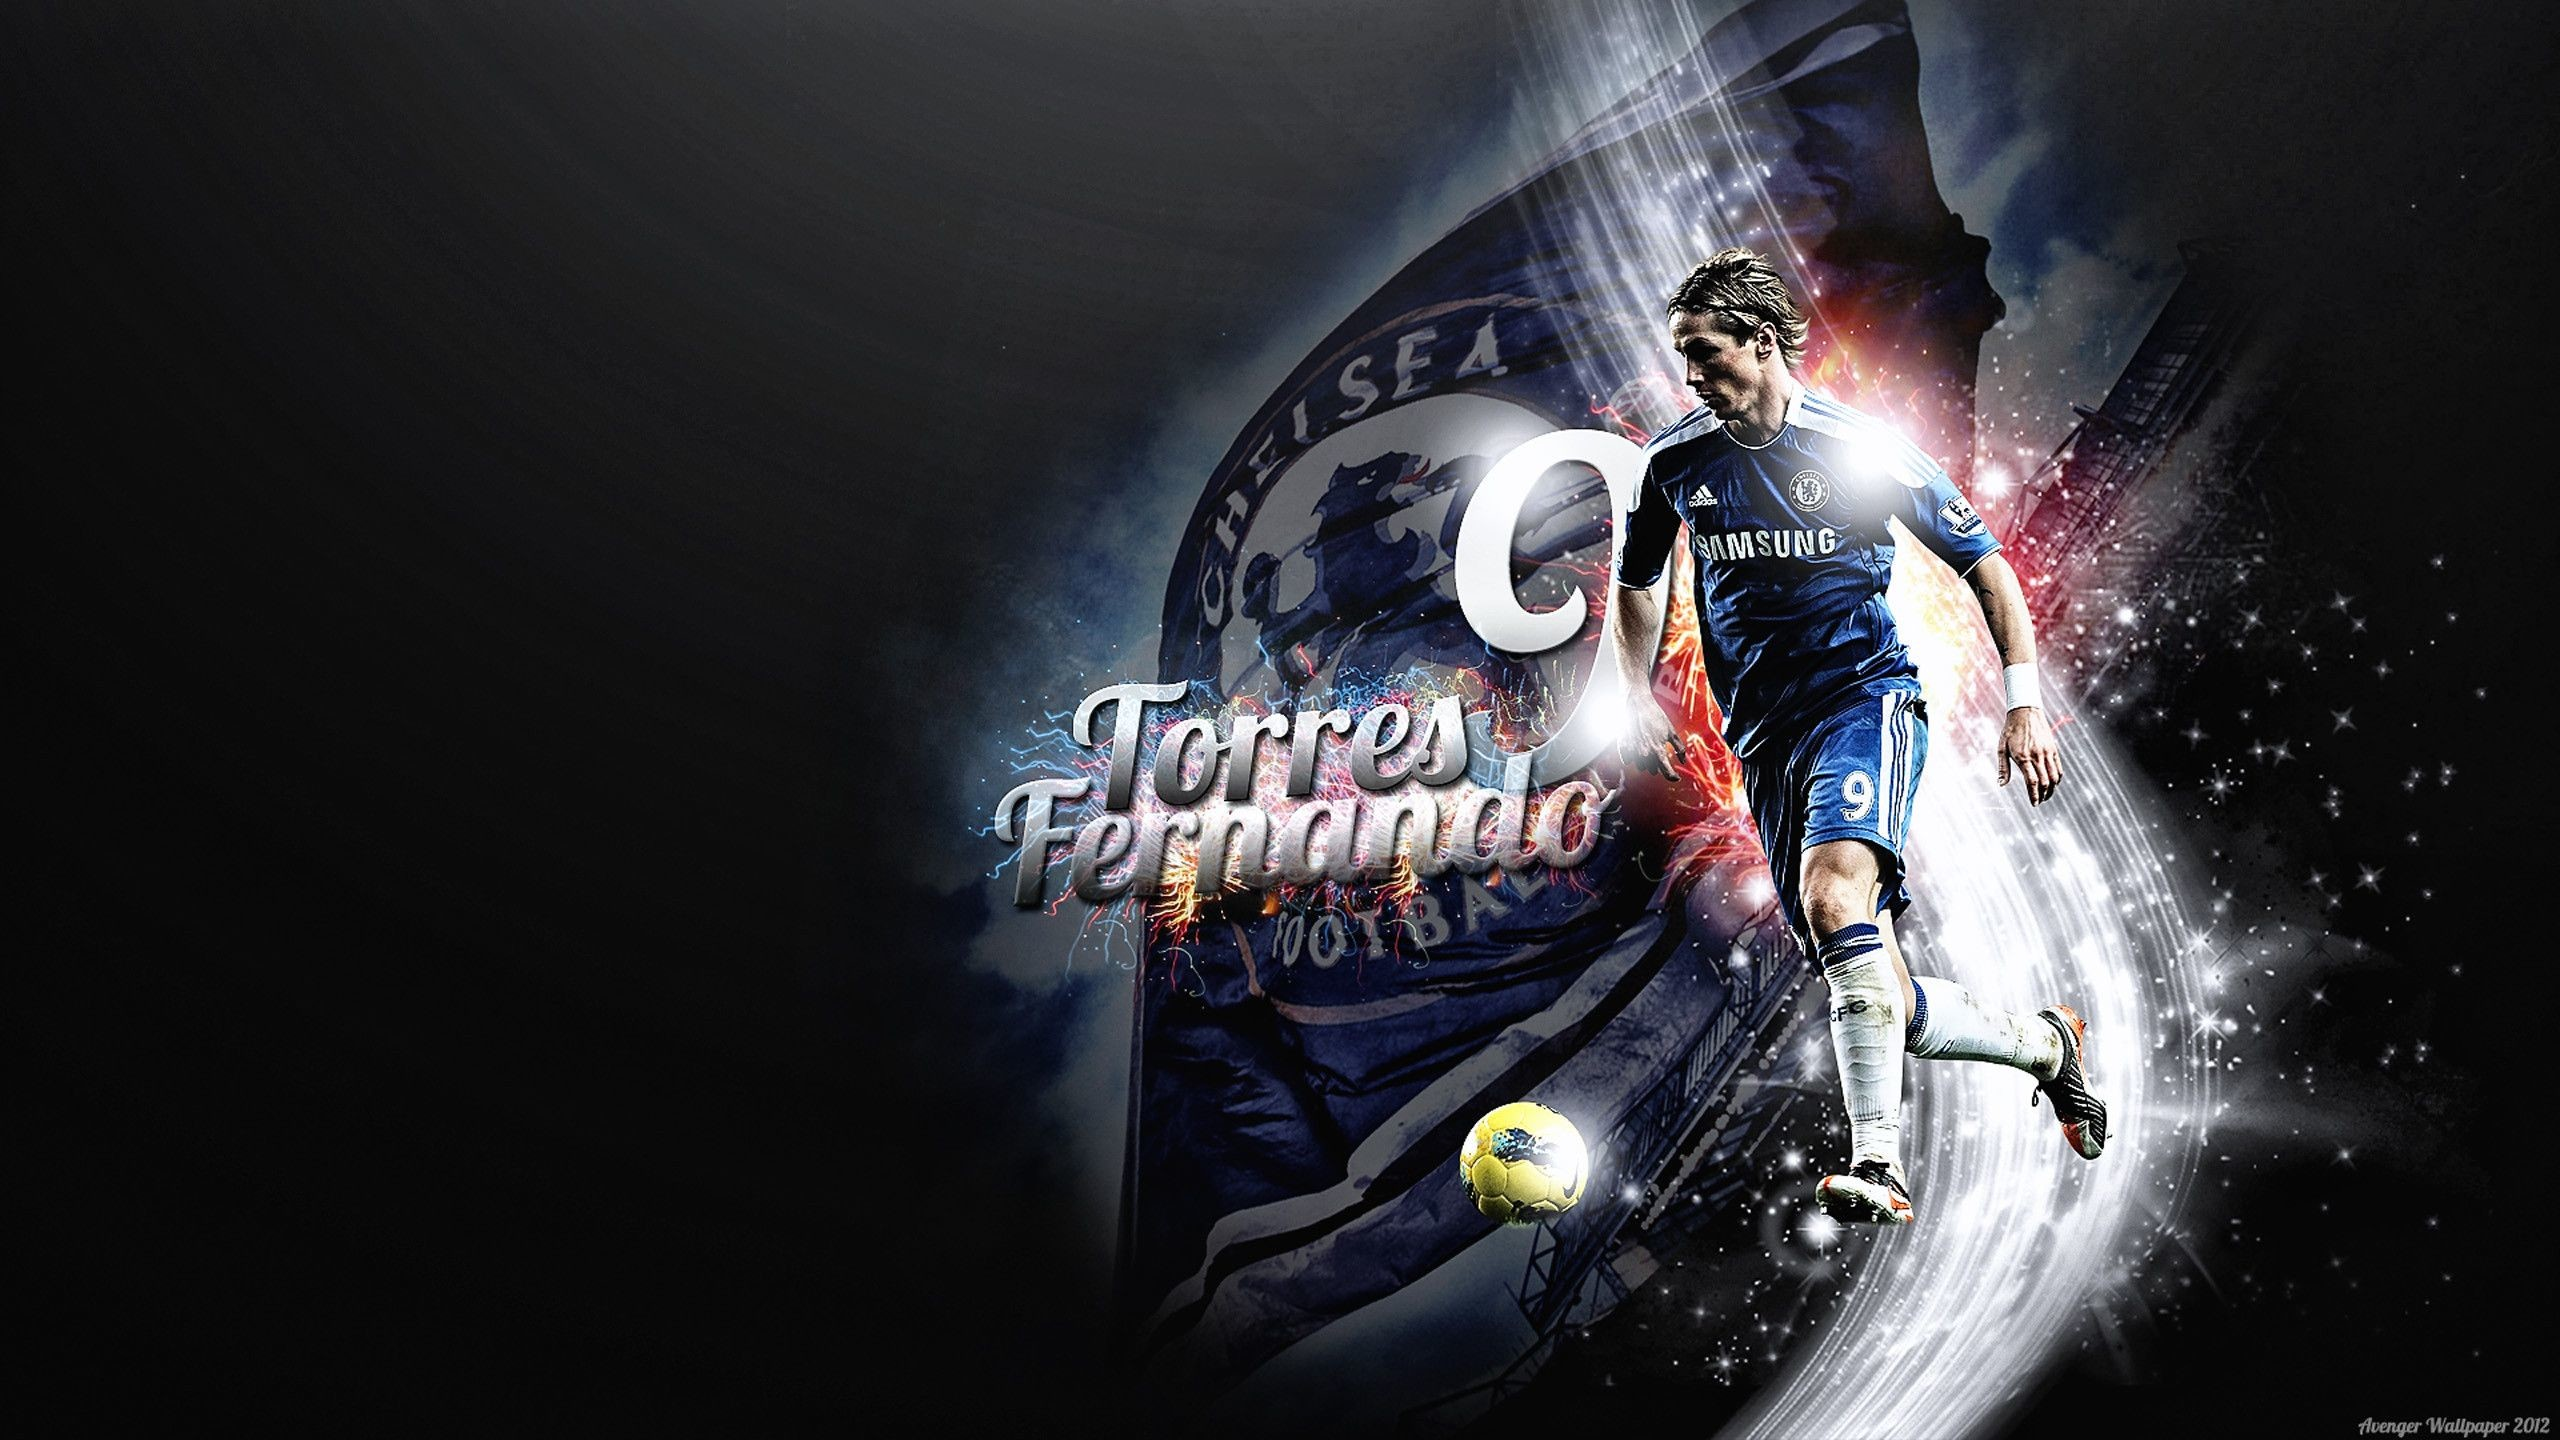 2560x1440 Football-Wallpaper-Widescreen-93 chelsea wallpapers HD free .